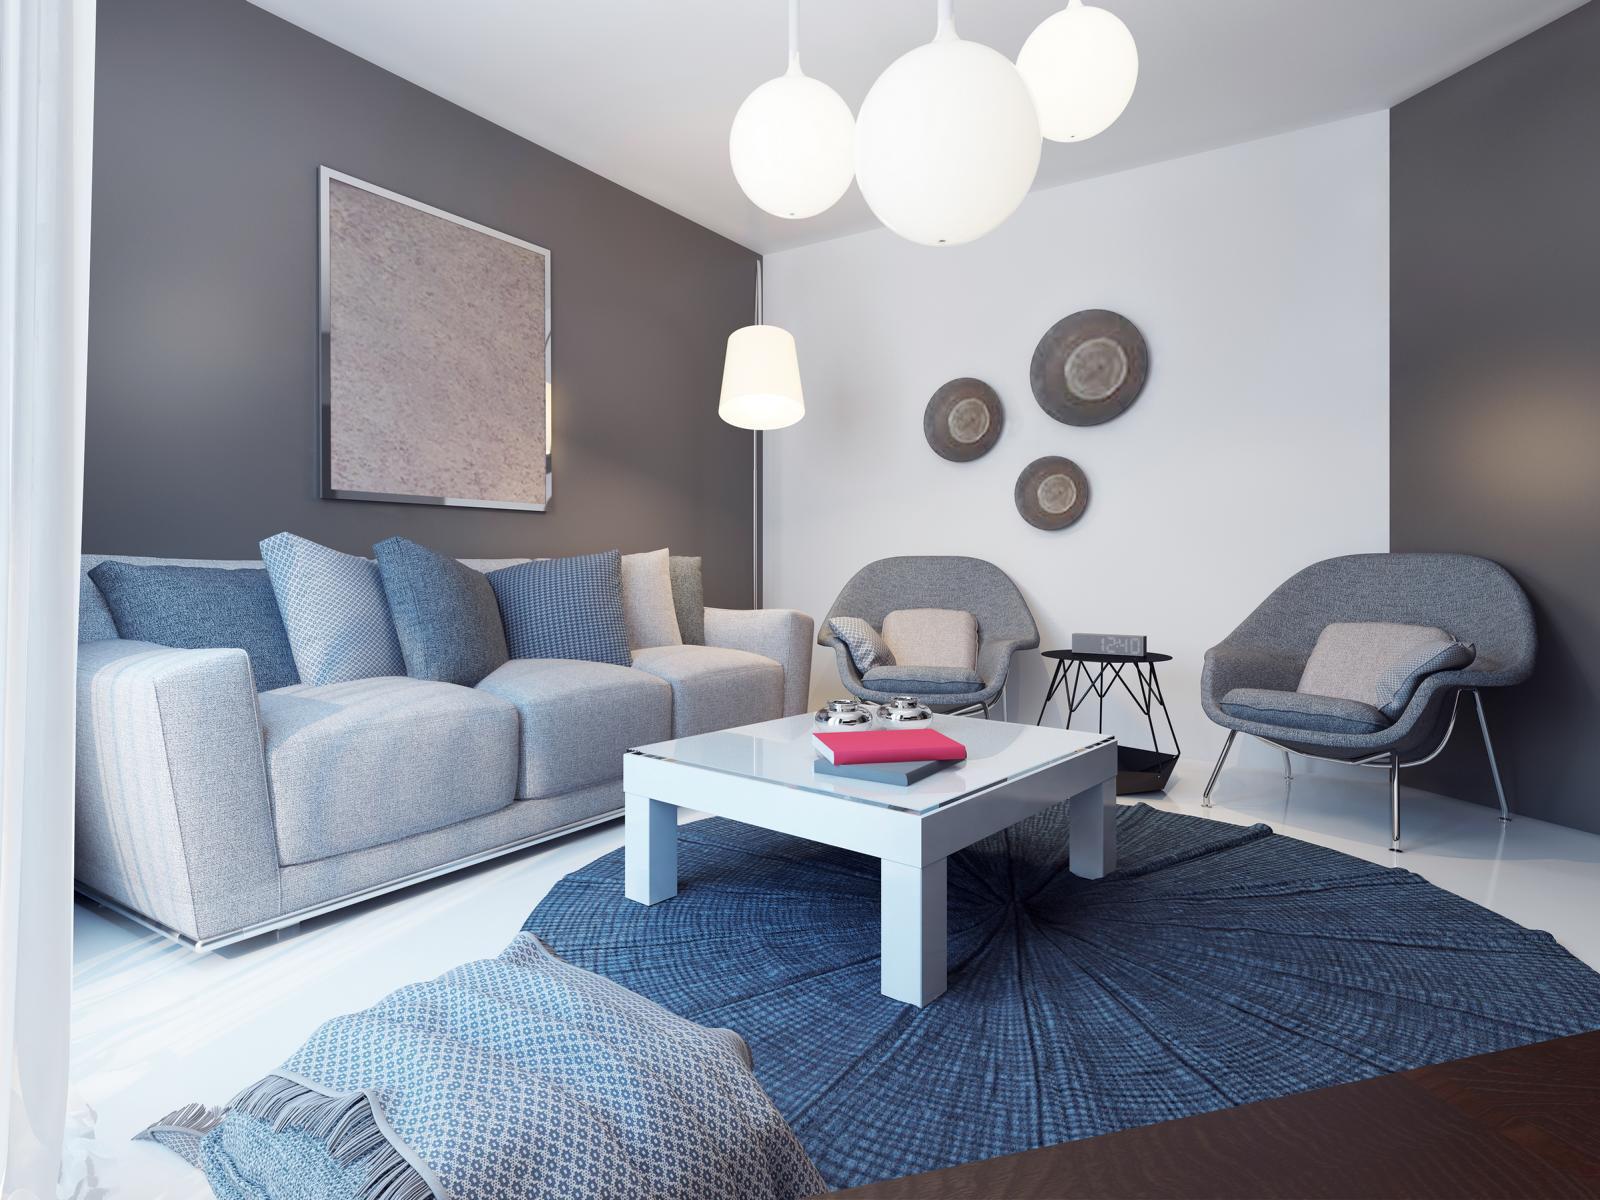 Color Your Home and Change Your Mood